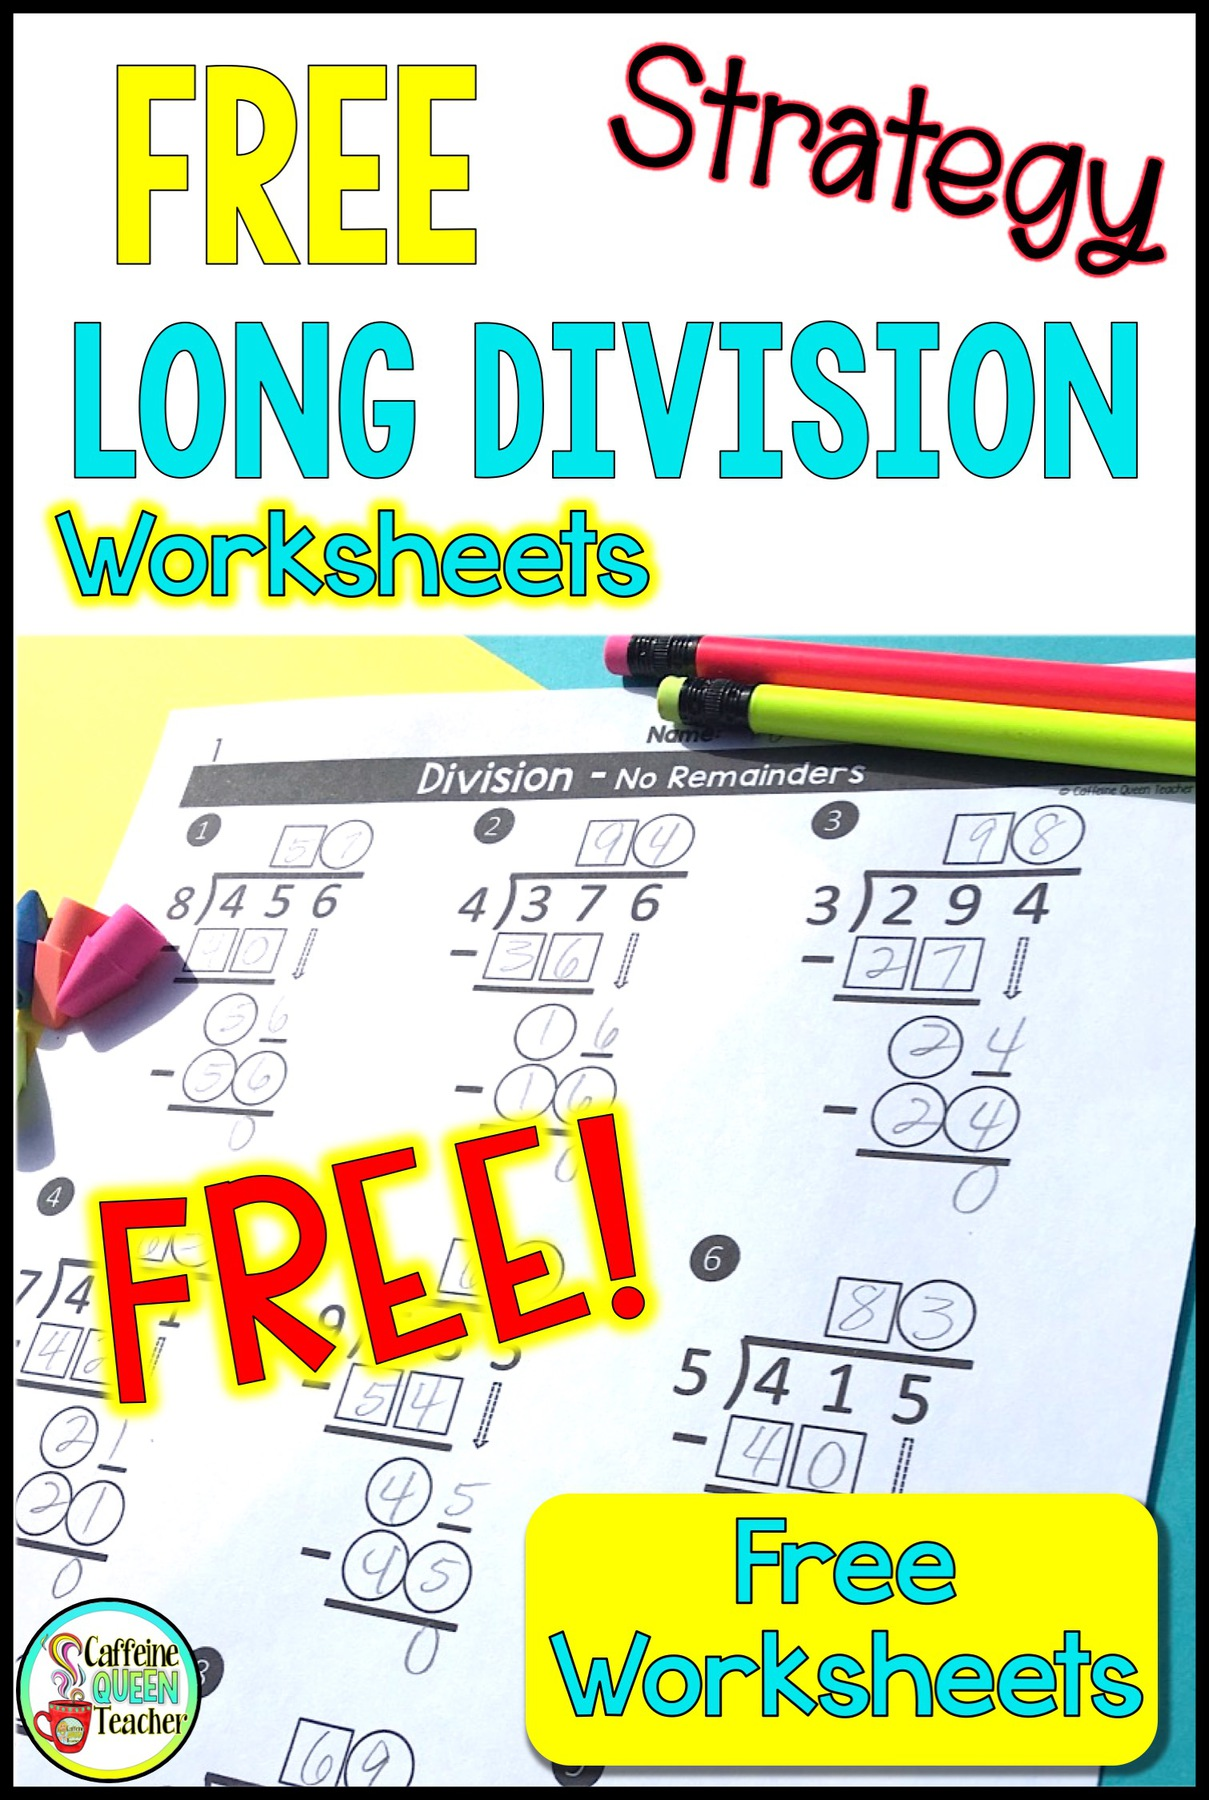 hight resolution of Differentiated Long Division Worksheets for FREE - Caffeine Queen Teacher